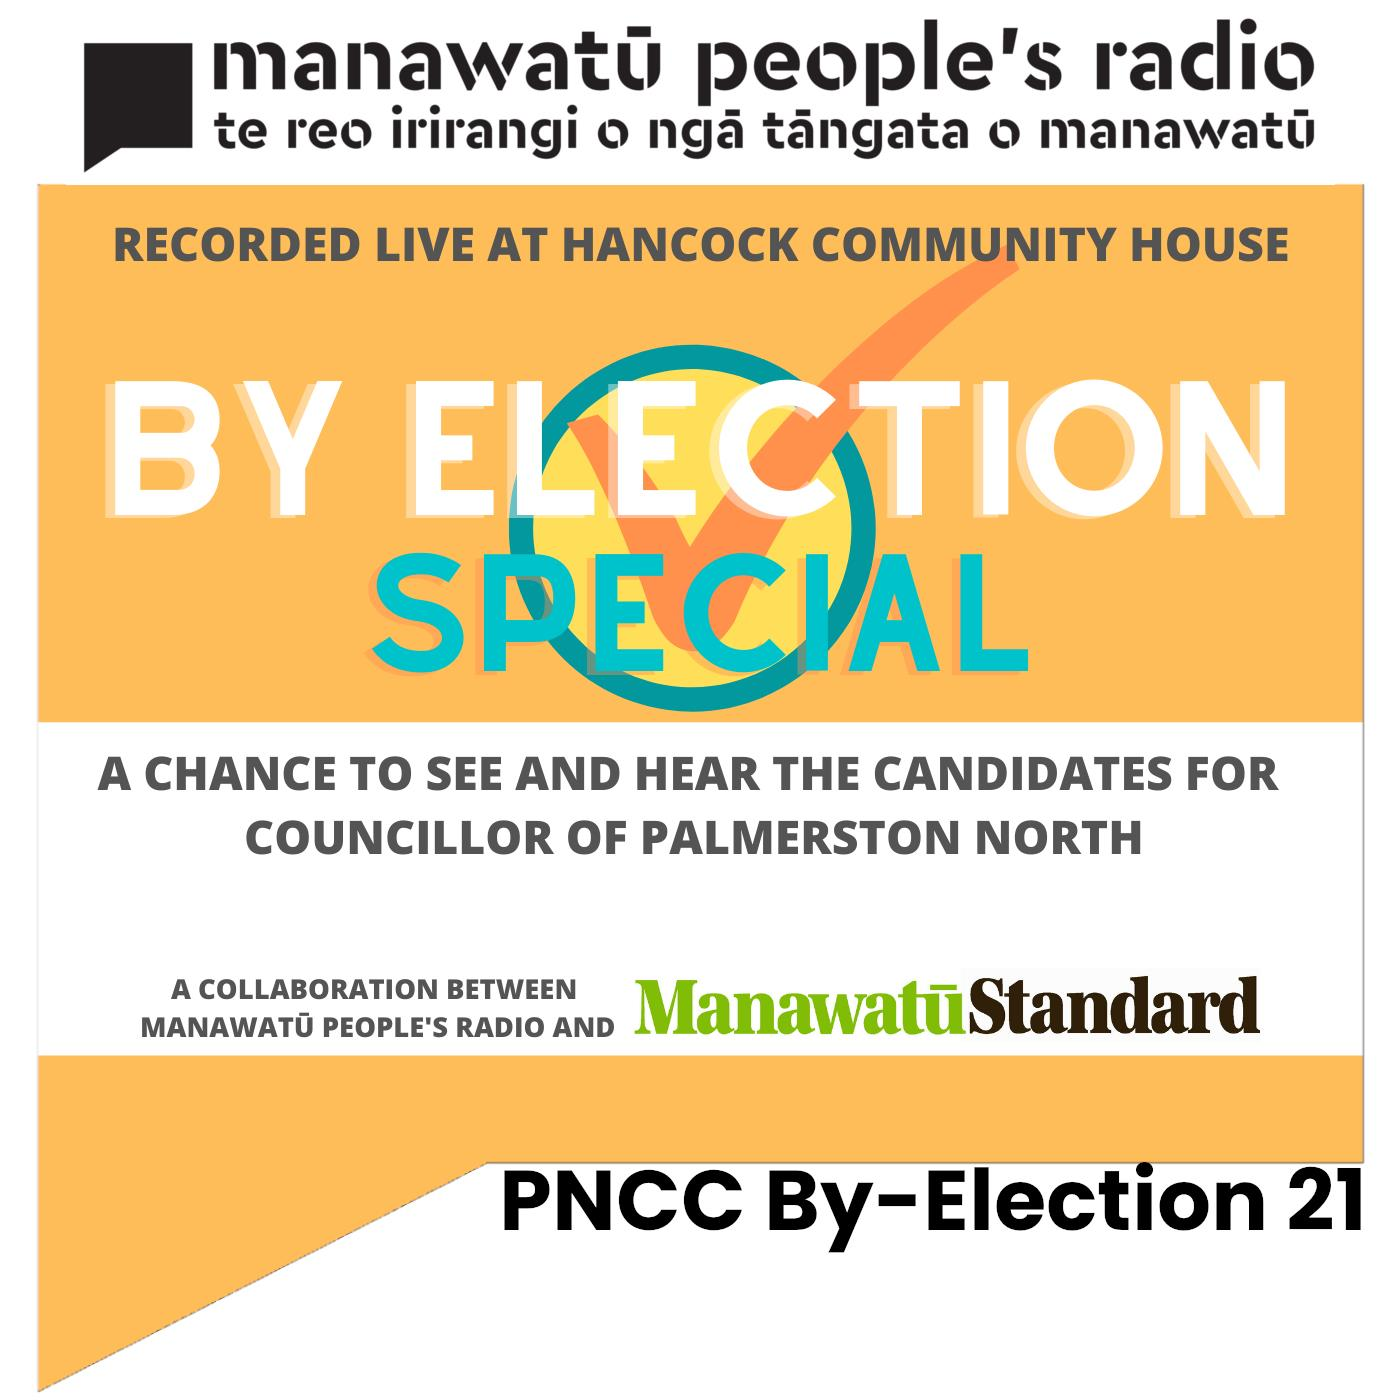 PNCC By-Election 21